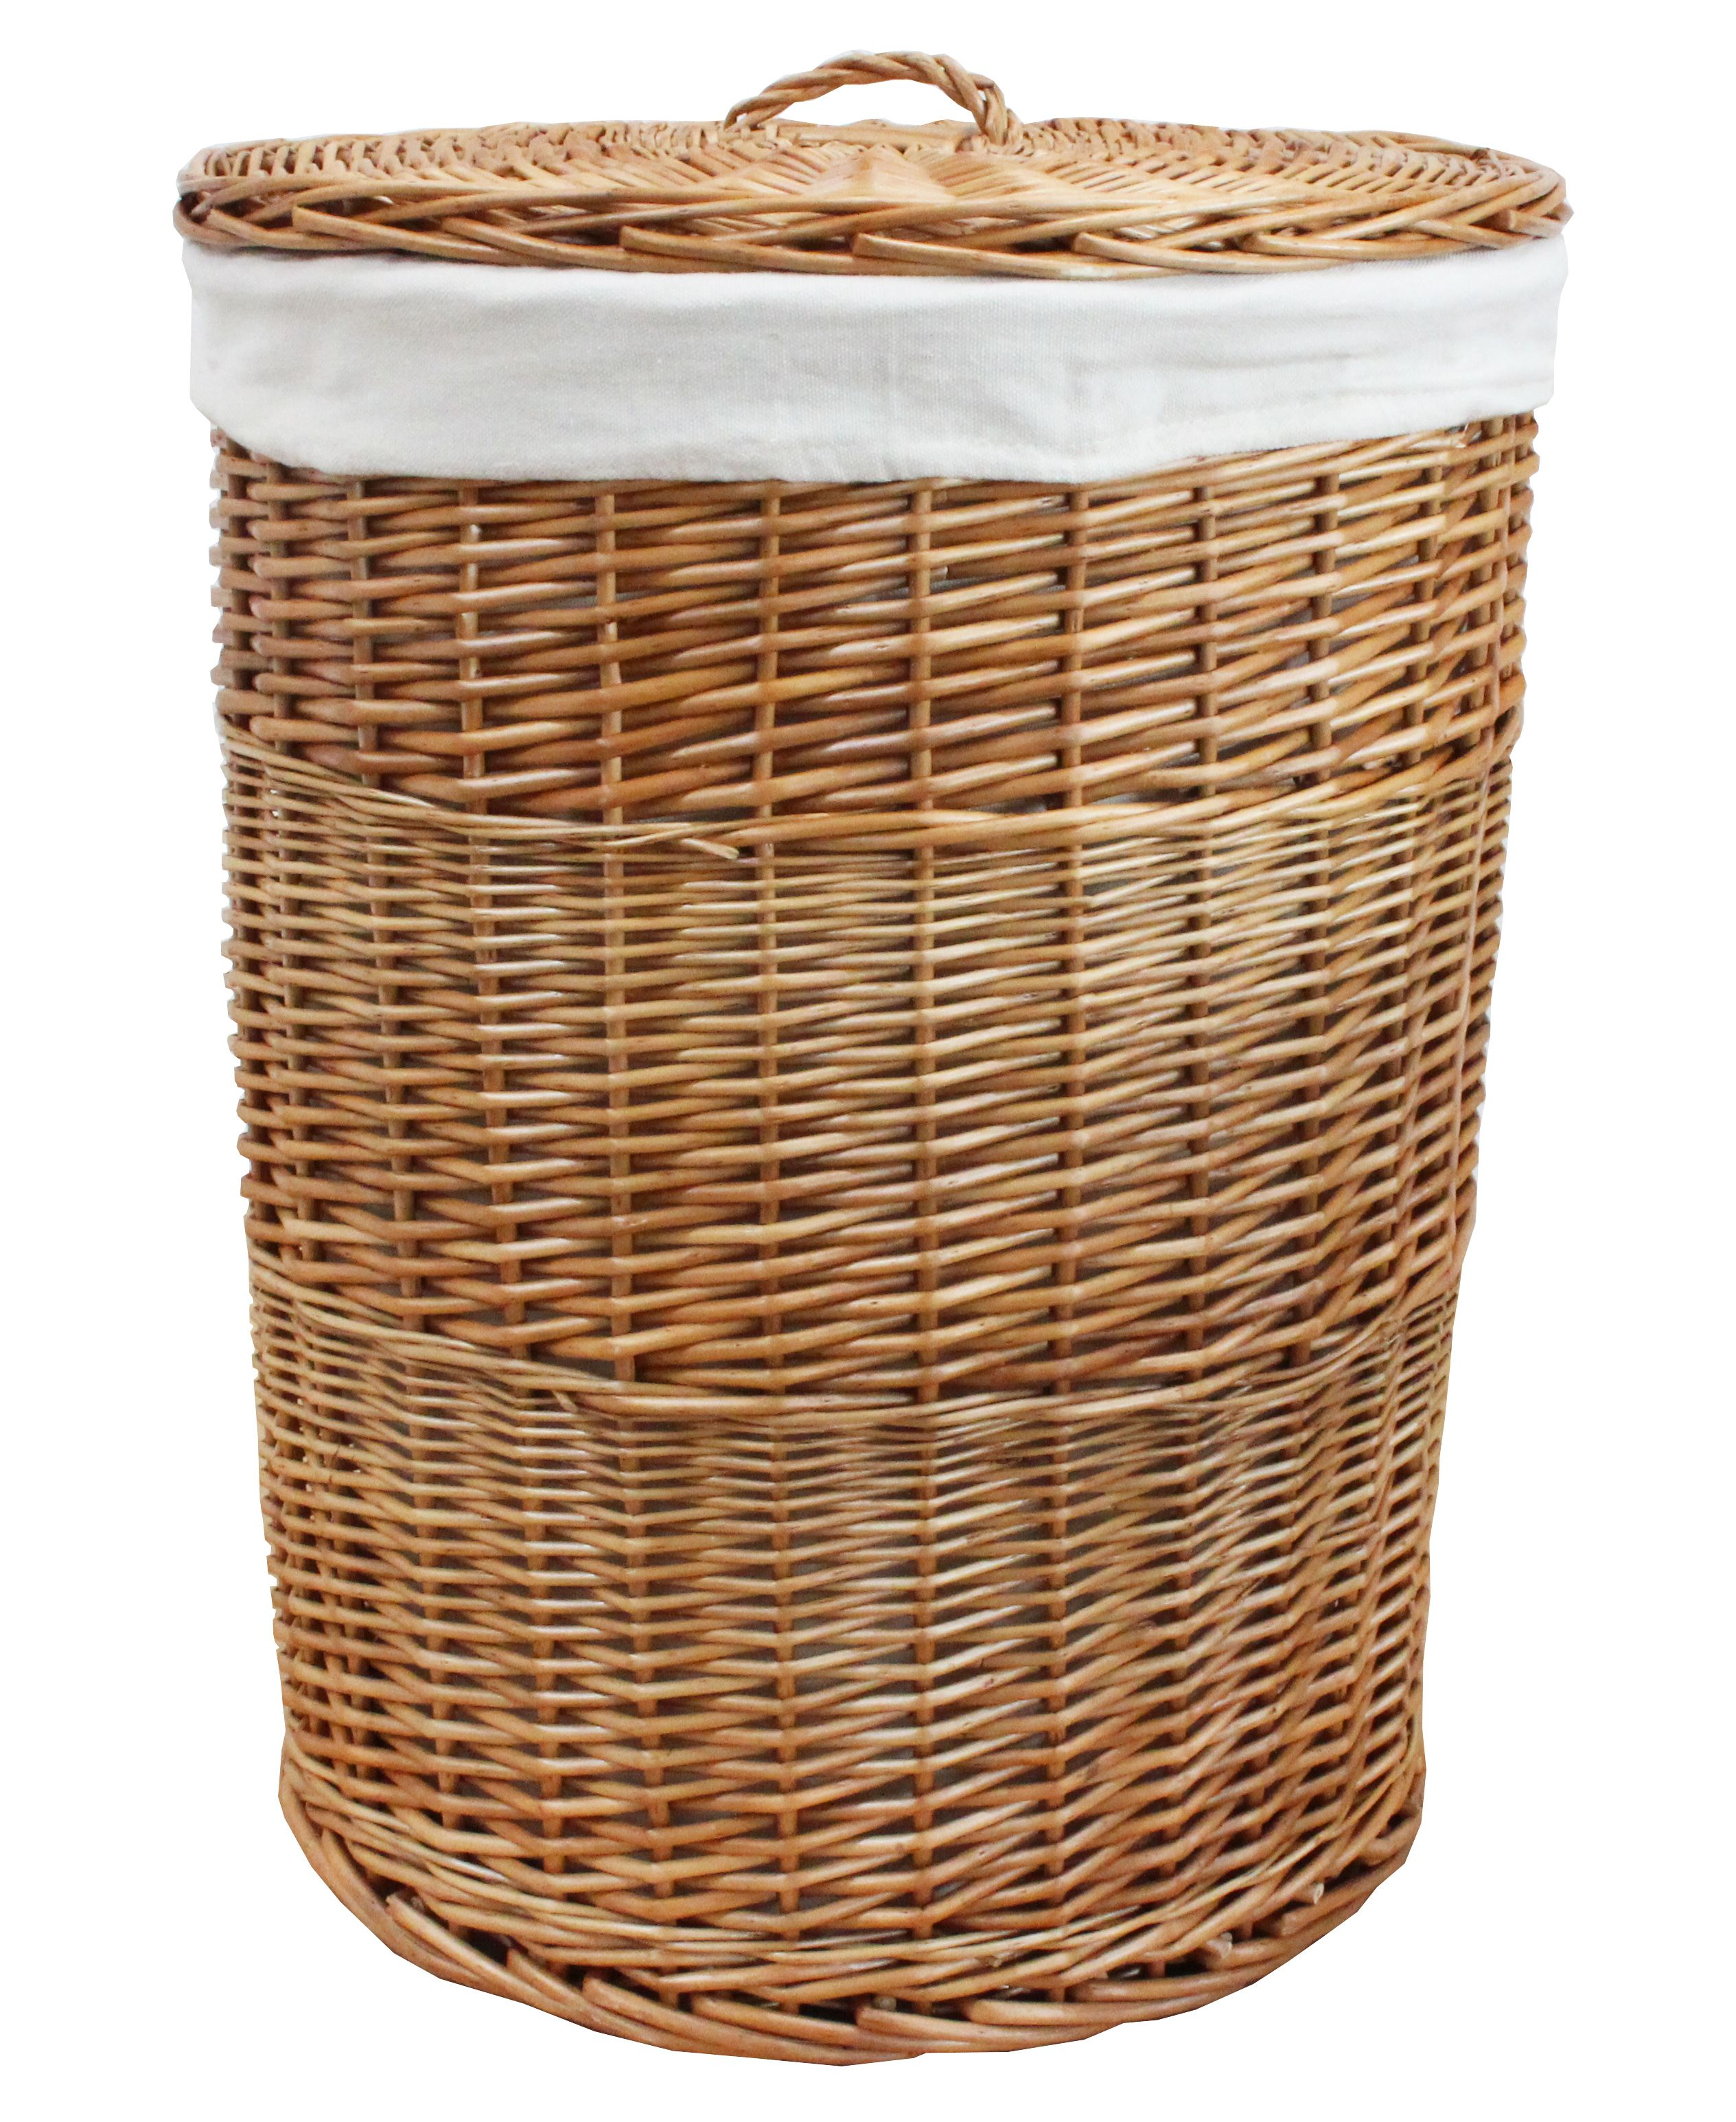 Round Natural Wicker Laundry Basket Wicker Laundry Basket Woven